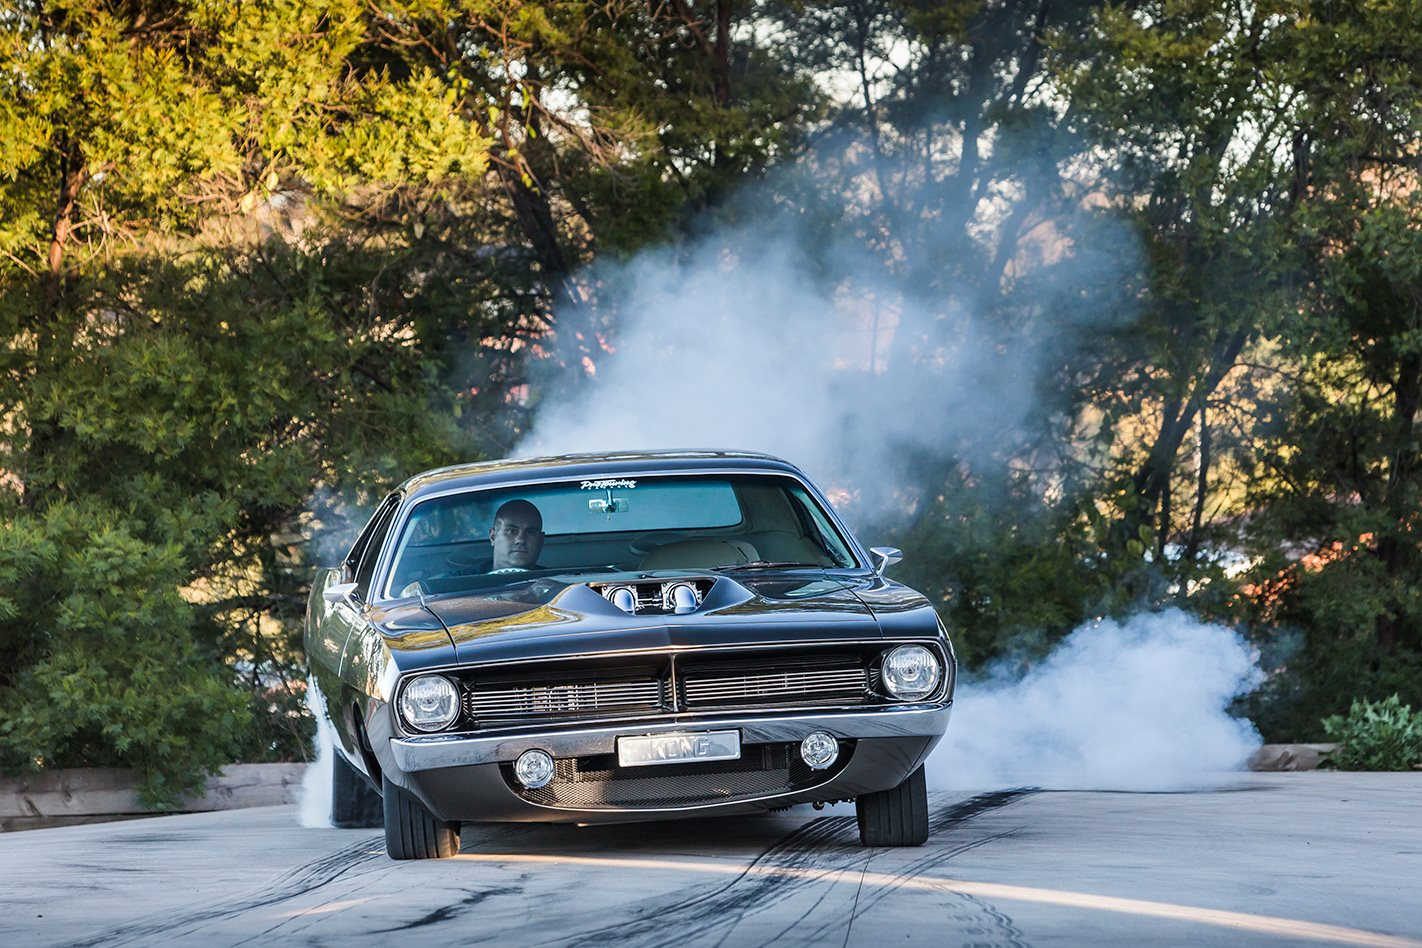 King Kong Cuda burnout